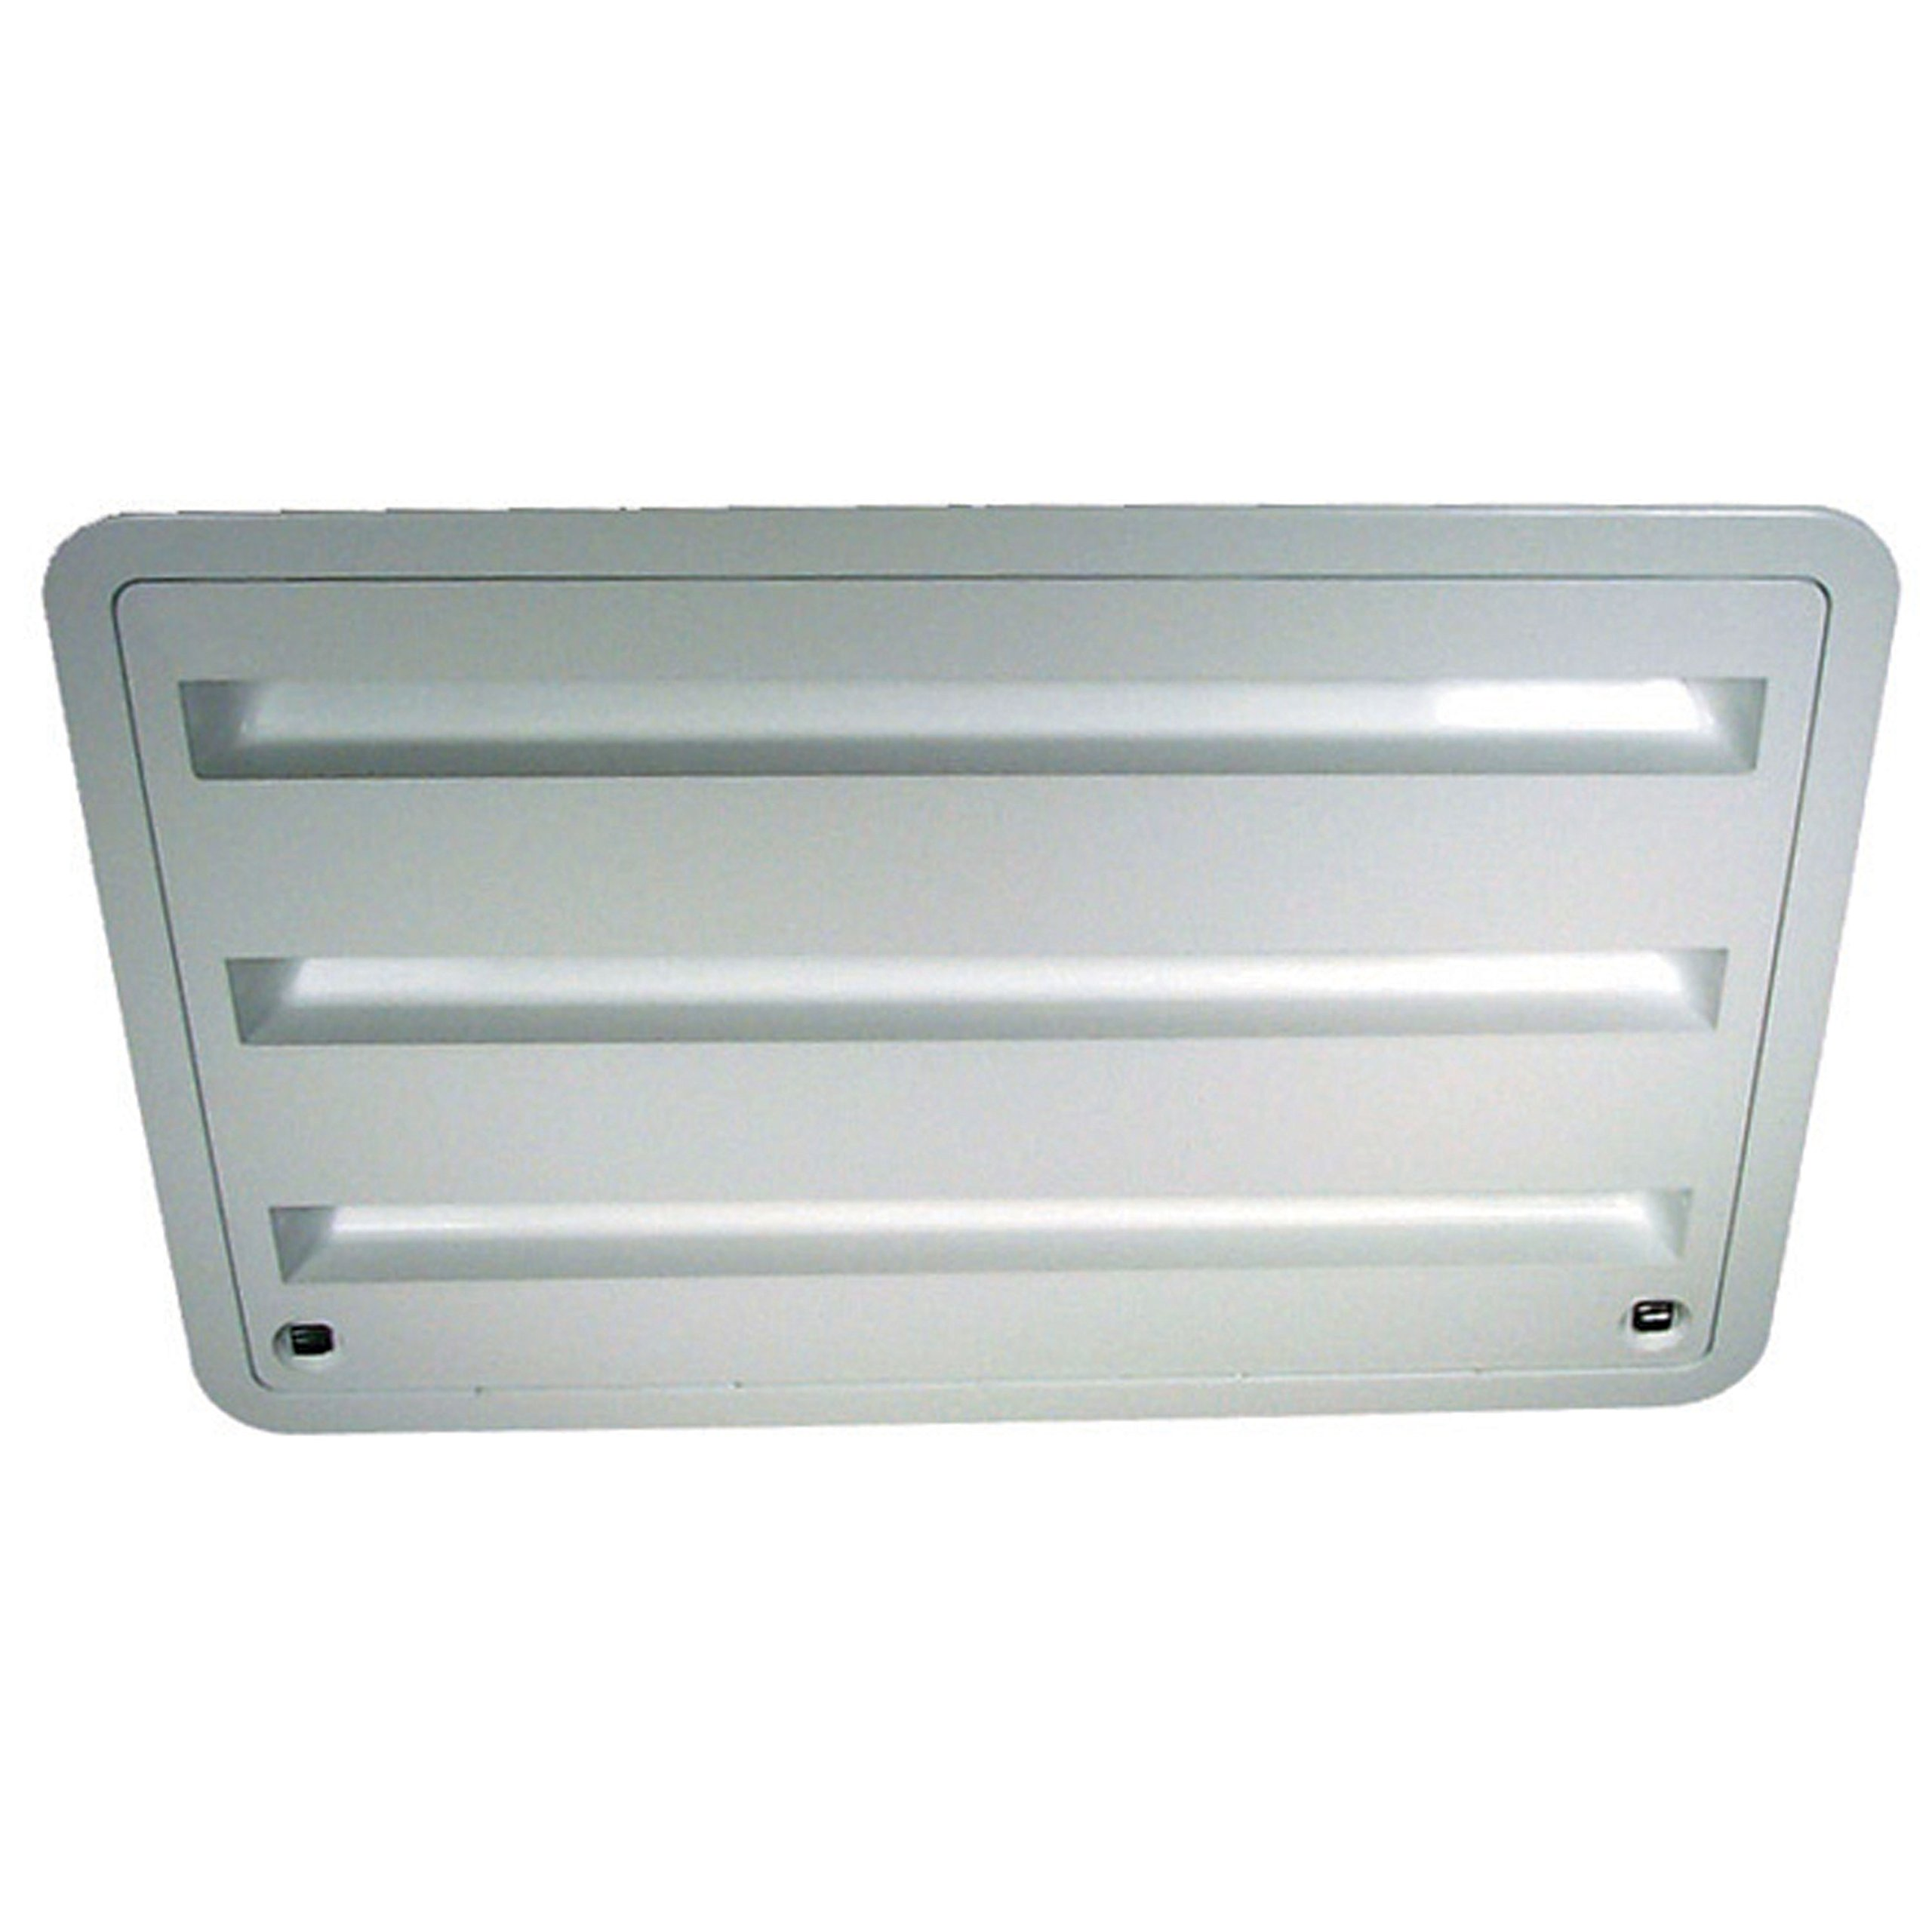 Dometic 3109350.011 Refrigerator Vent - Lower Sidewall Vent, Polar White by Dometic